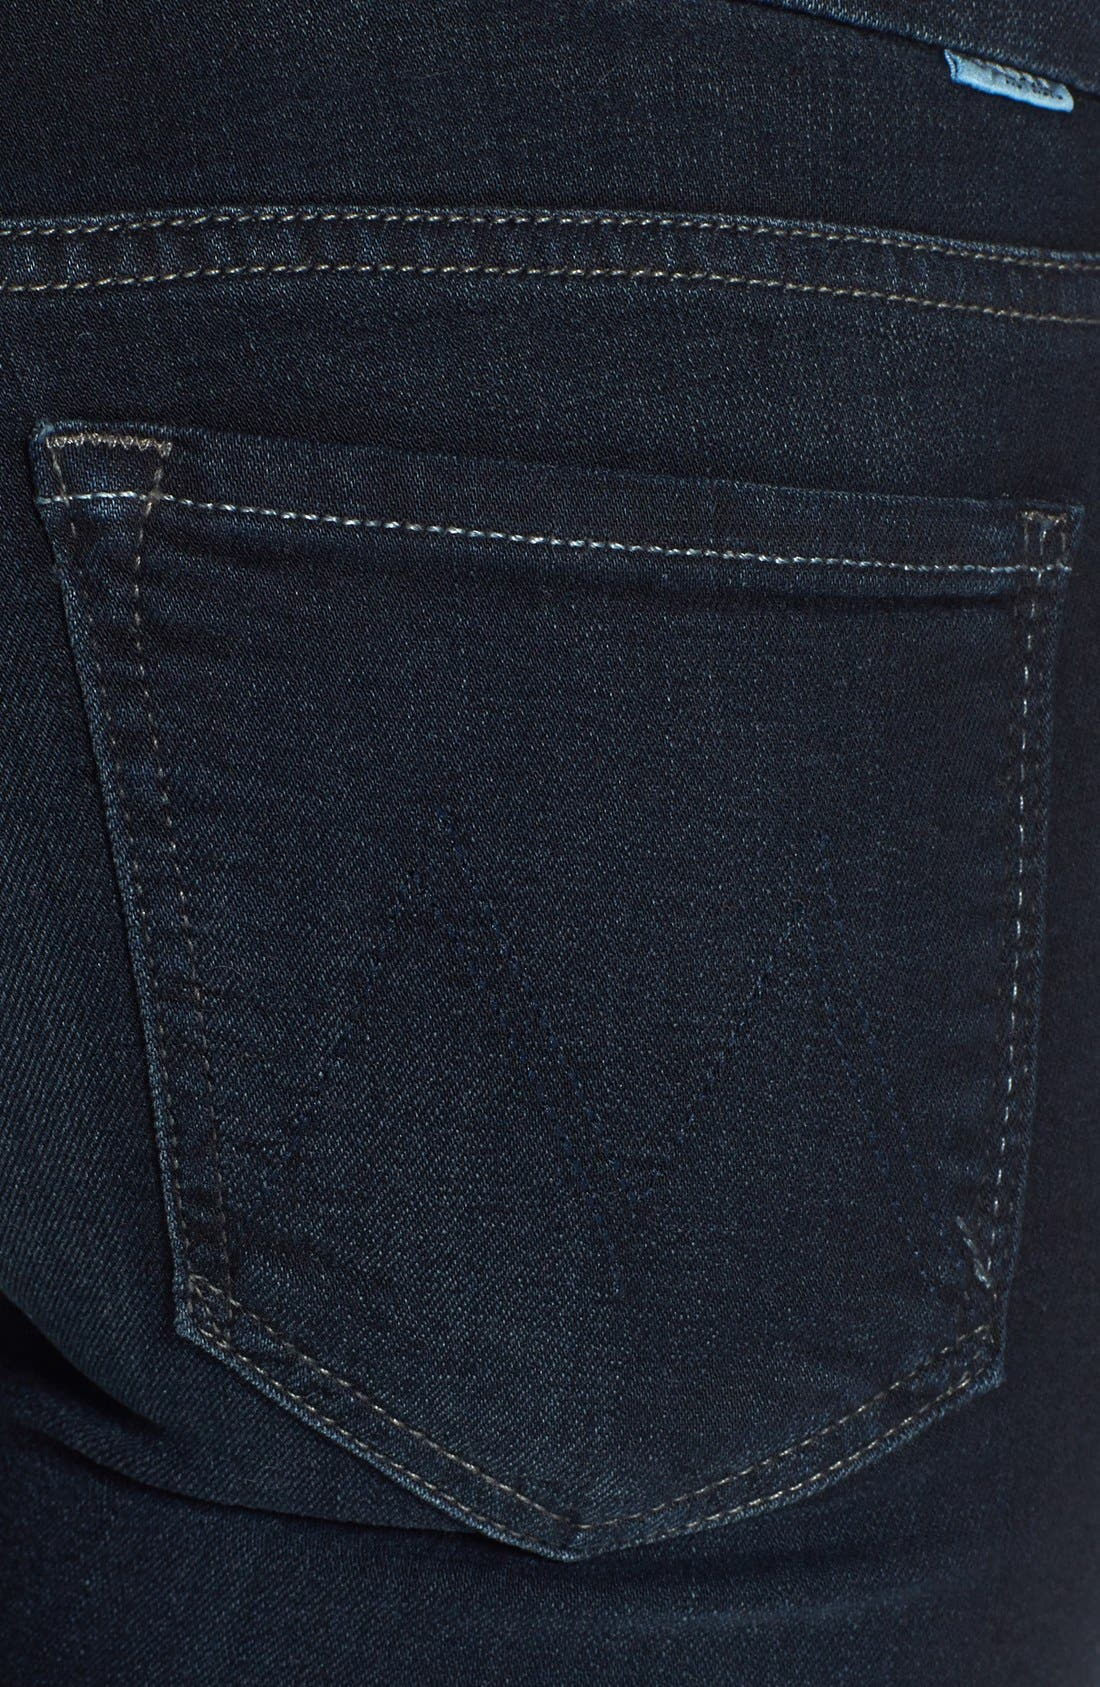 'The Looker' Stretch Skinny Jeans,                             Alternate thumbnail 3, color,                             Bittersweet